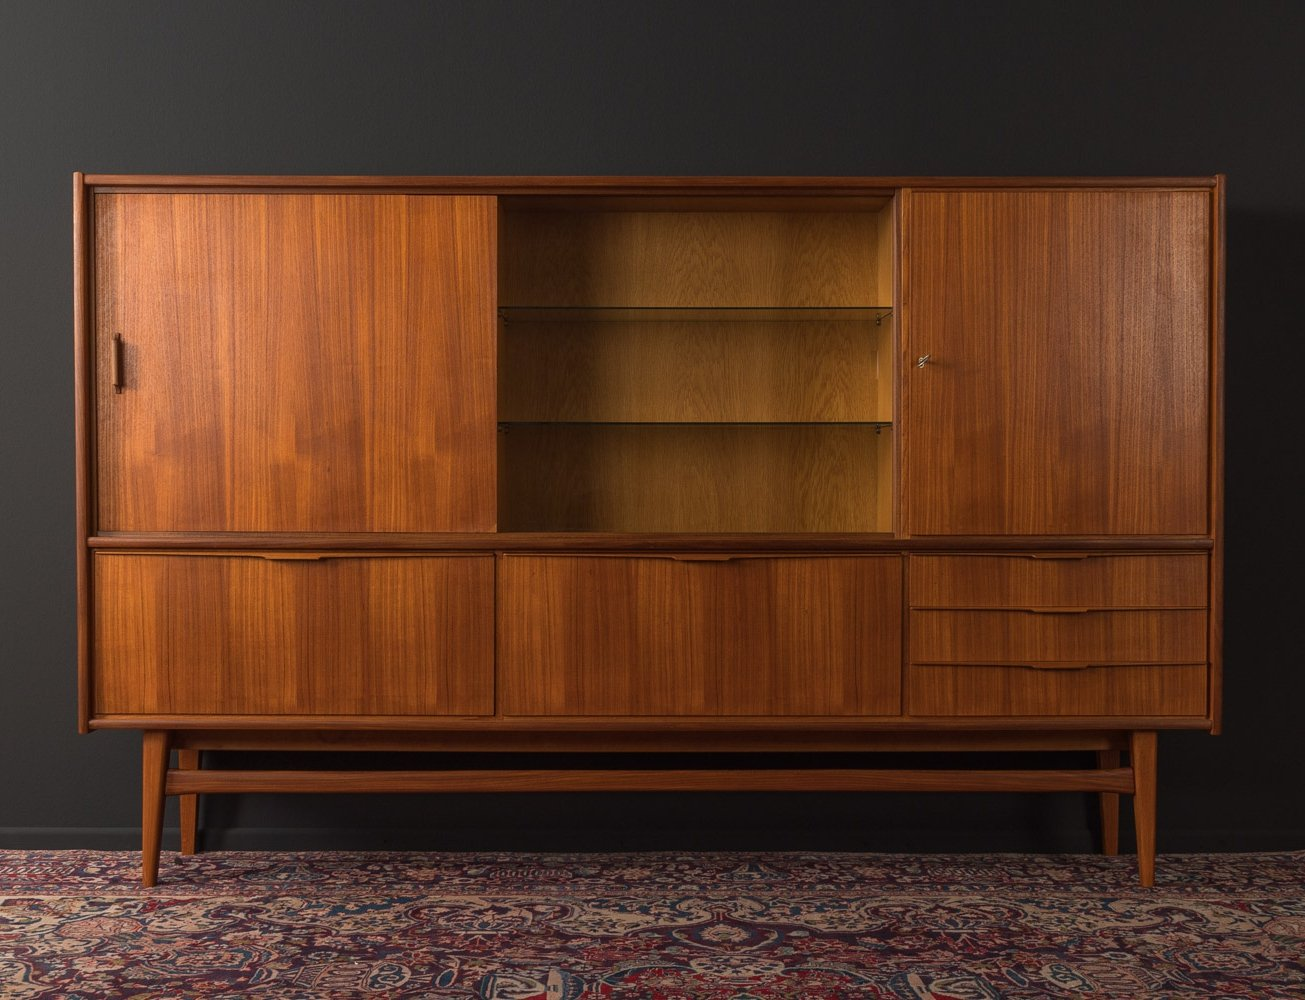 1960s highboard by Bartels Werken GmbH